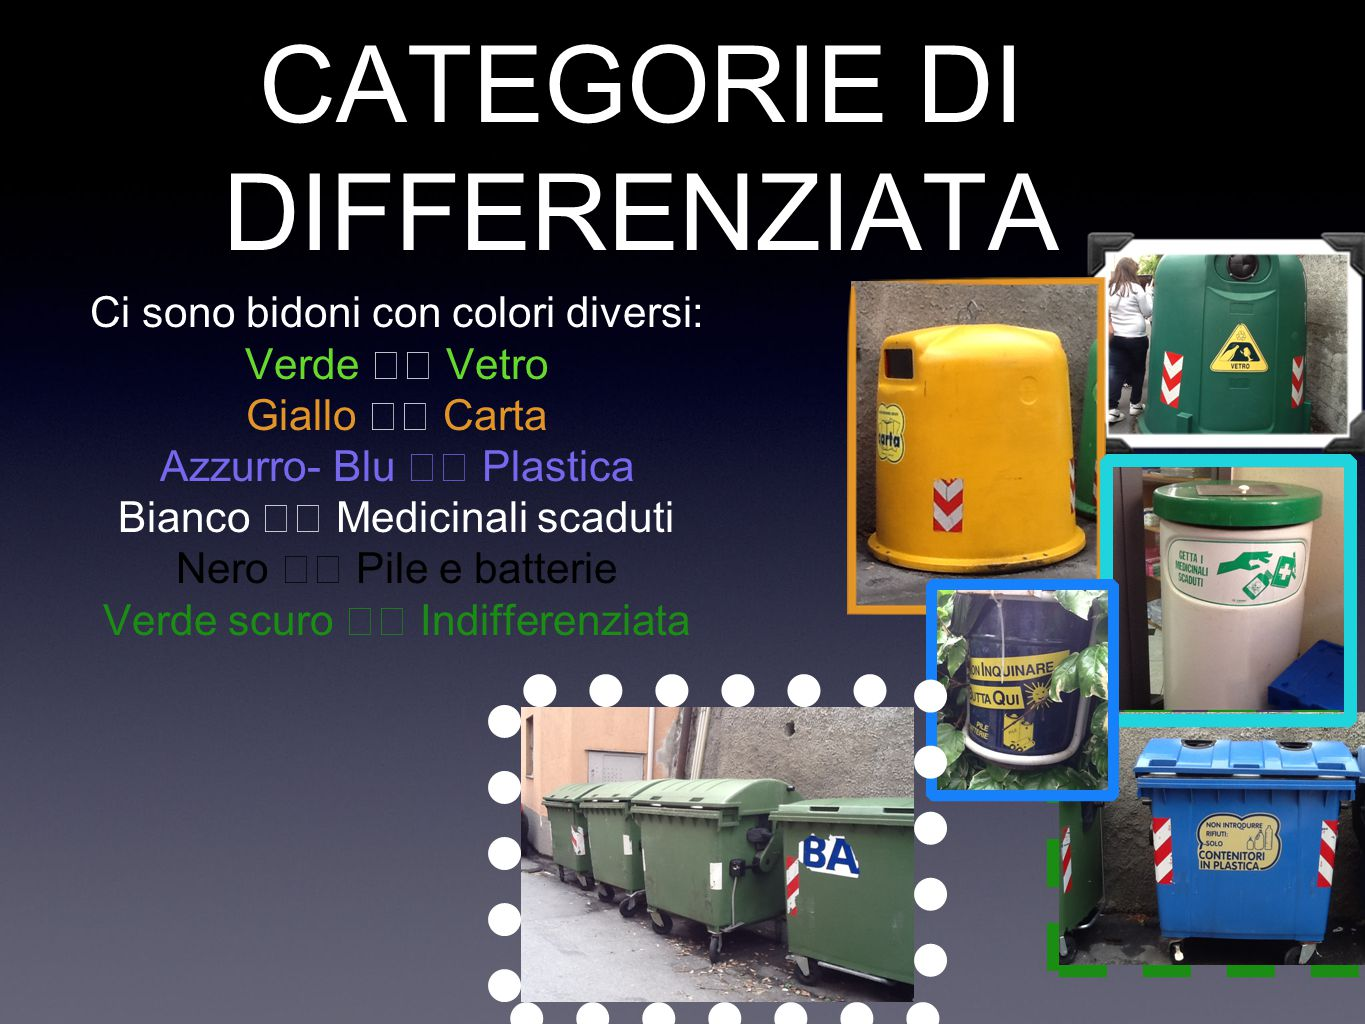 DIVERSE CATEGORIE DI DIFFERENZIATA